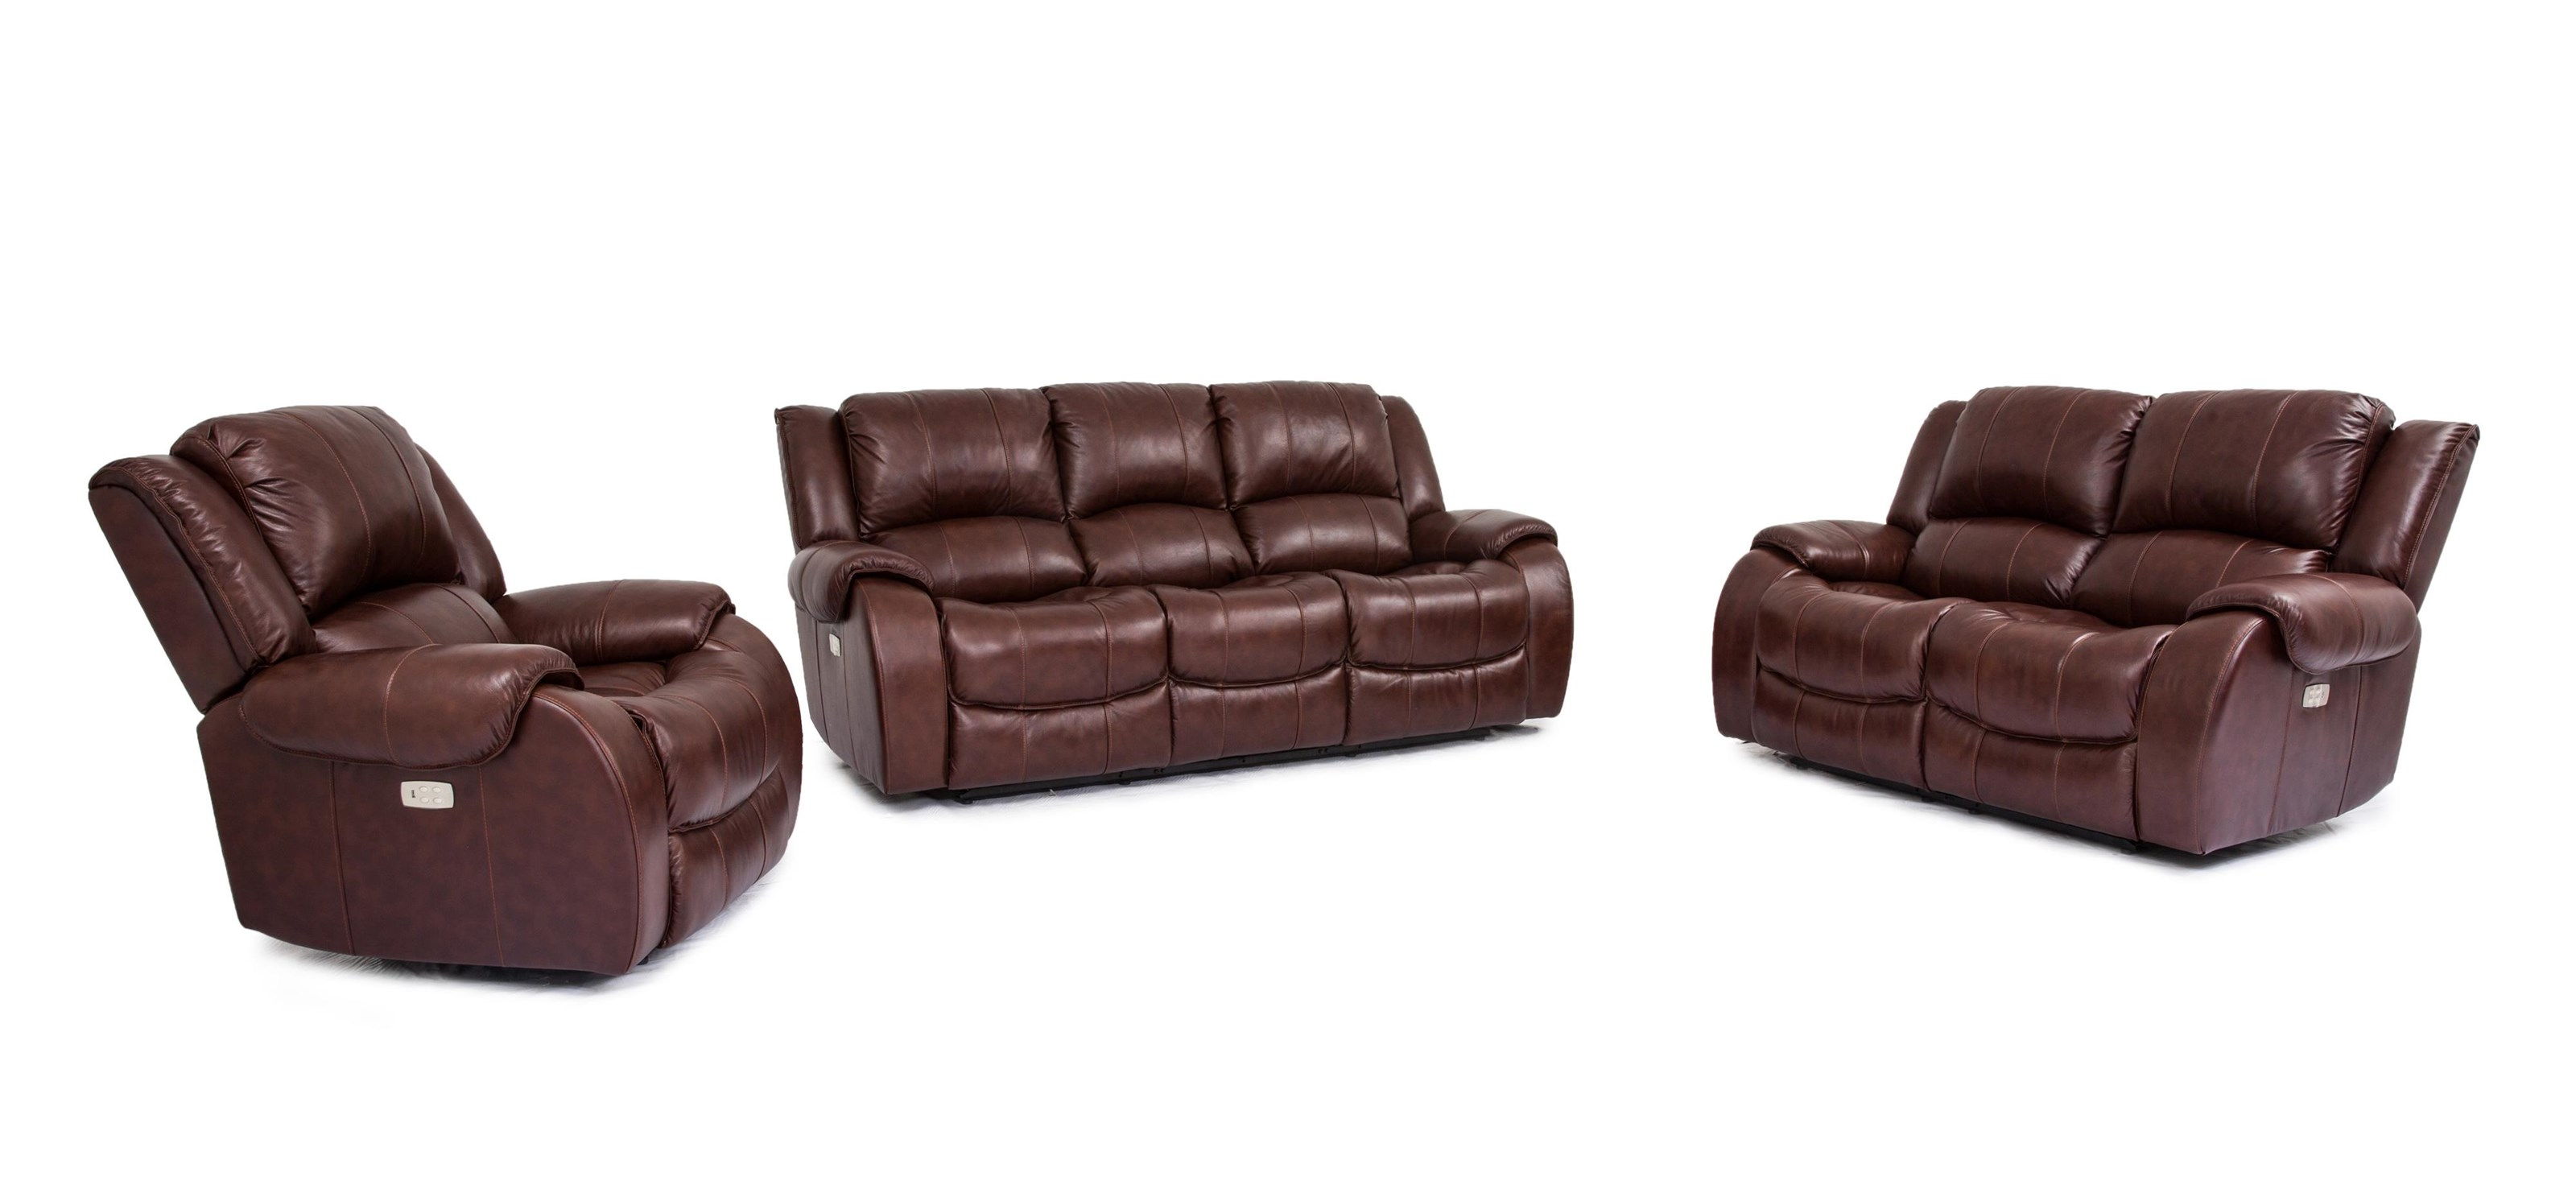 Sensational Cheers Leather Recliner Sofa 1539 Buy Leather Recliner Ibusinesslaw Wood Chair Design Ideas Ibusinesslaworg